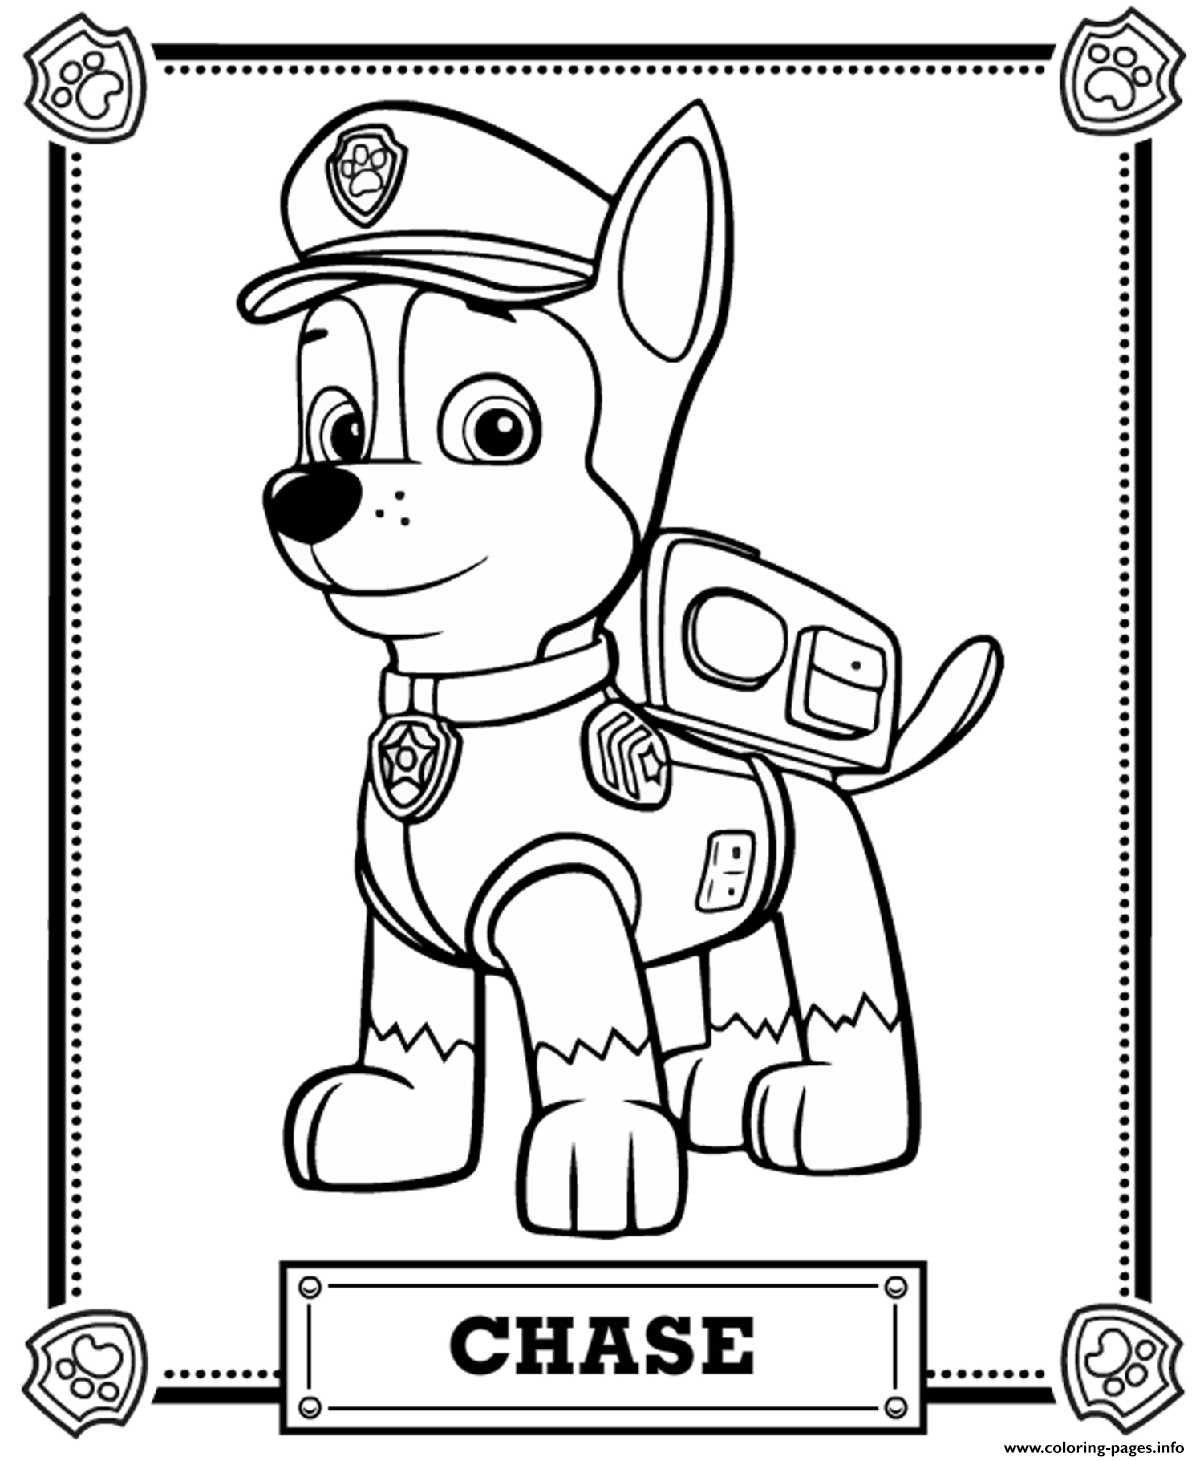 photo about Paw Patrol Printable named Paw Patrol Chase Coloring Internet pages Printable